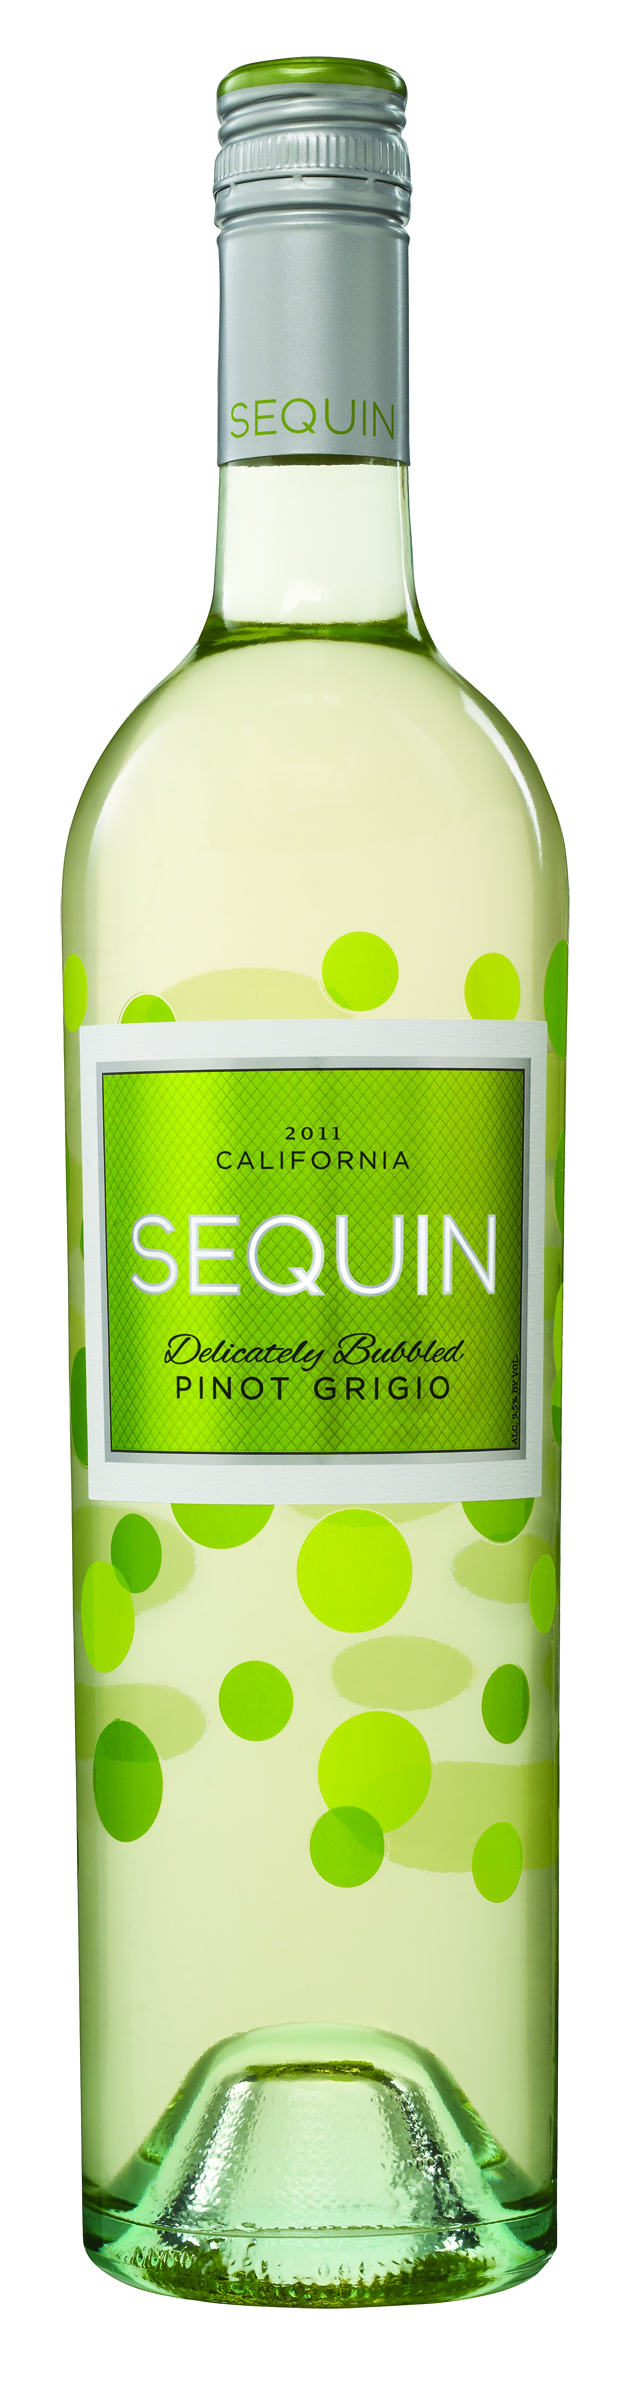 SEQUIN WINES Pinot Grigio_Bottle Shot